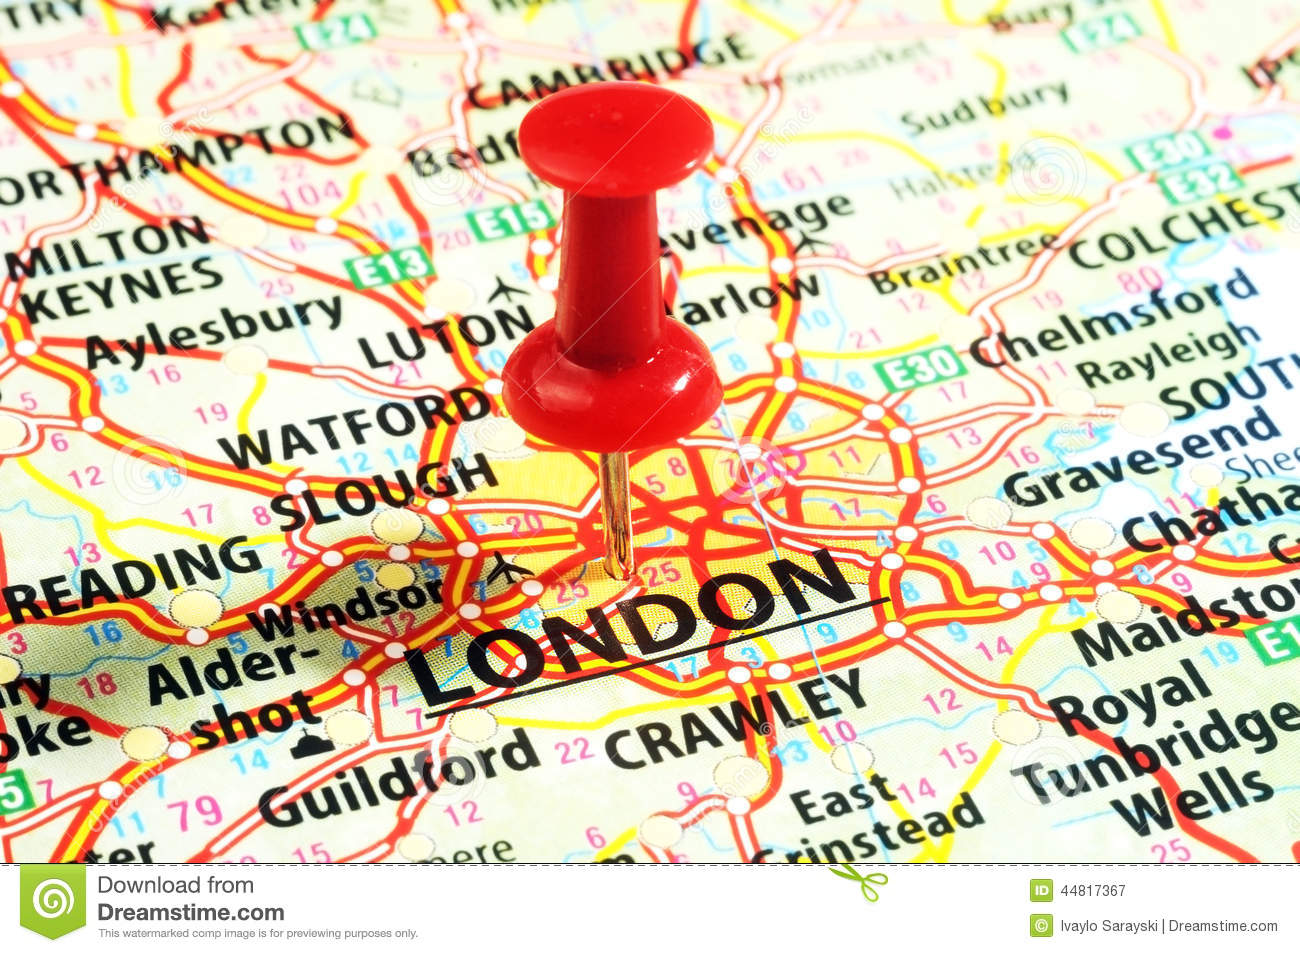 London UK Map Pin Photo Image 44817352 – London Travel Maps